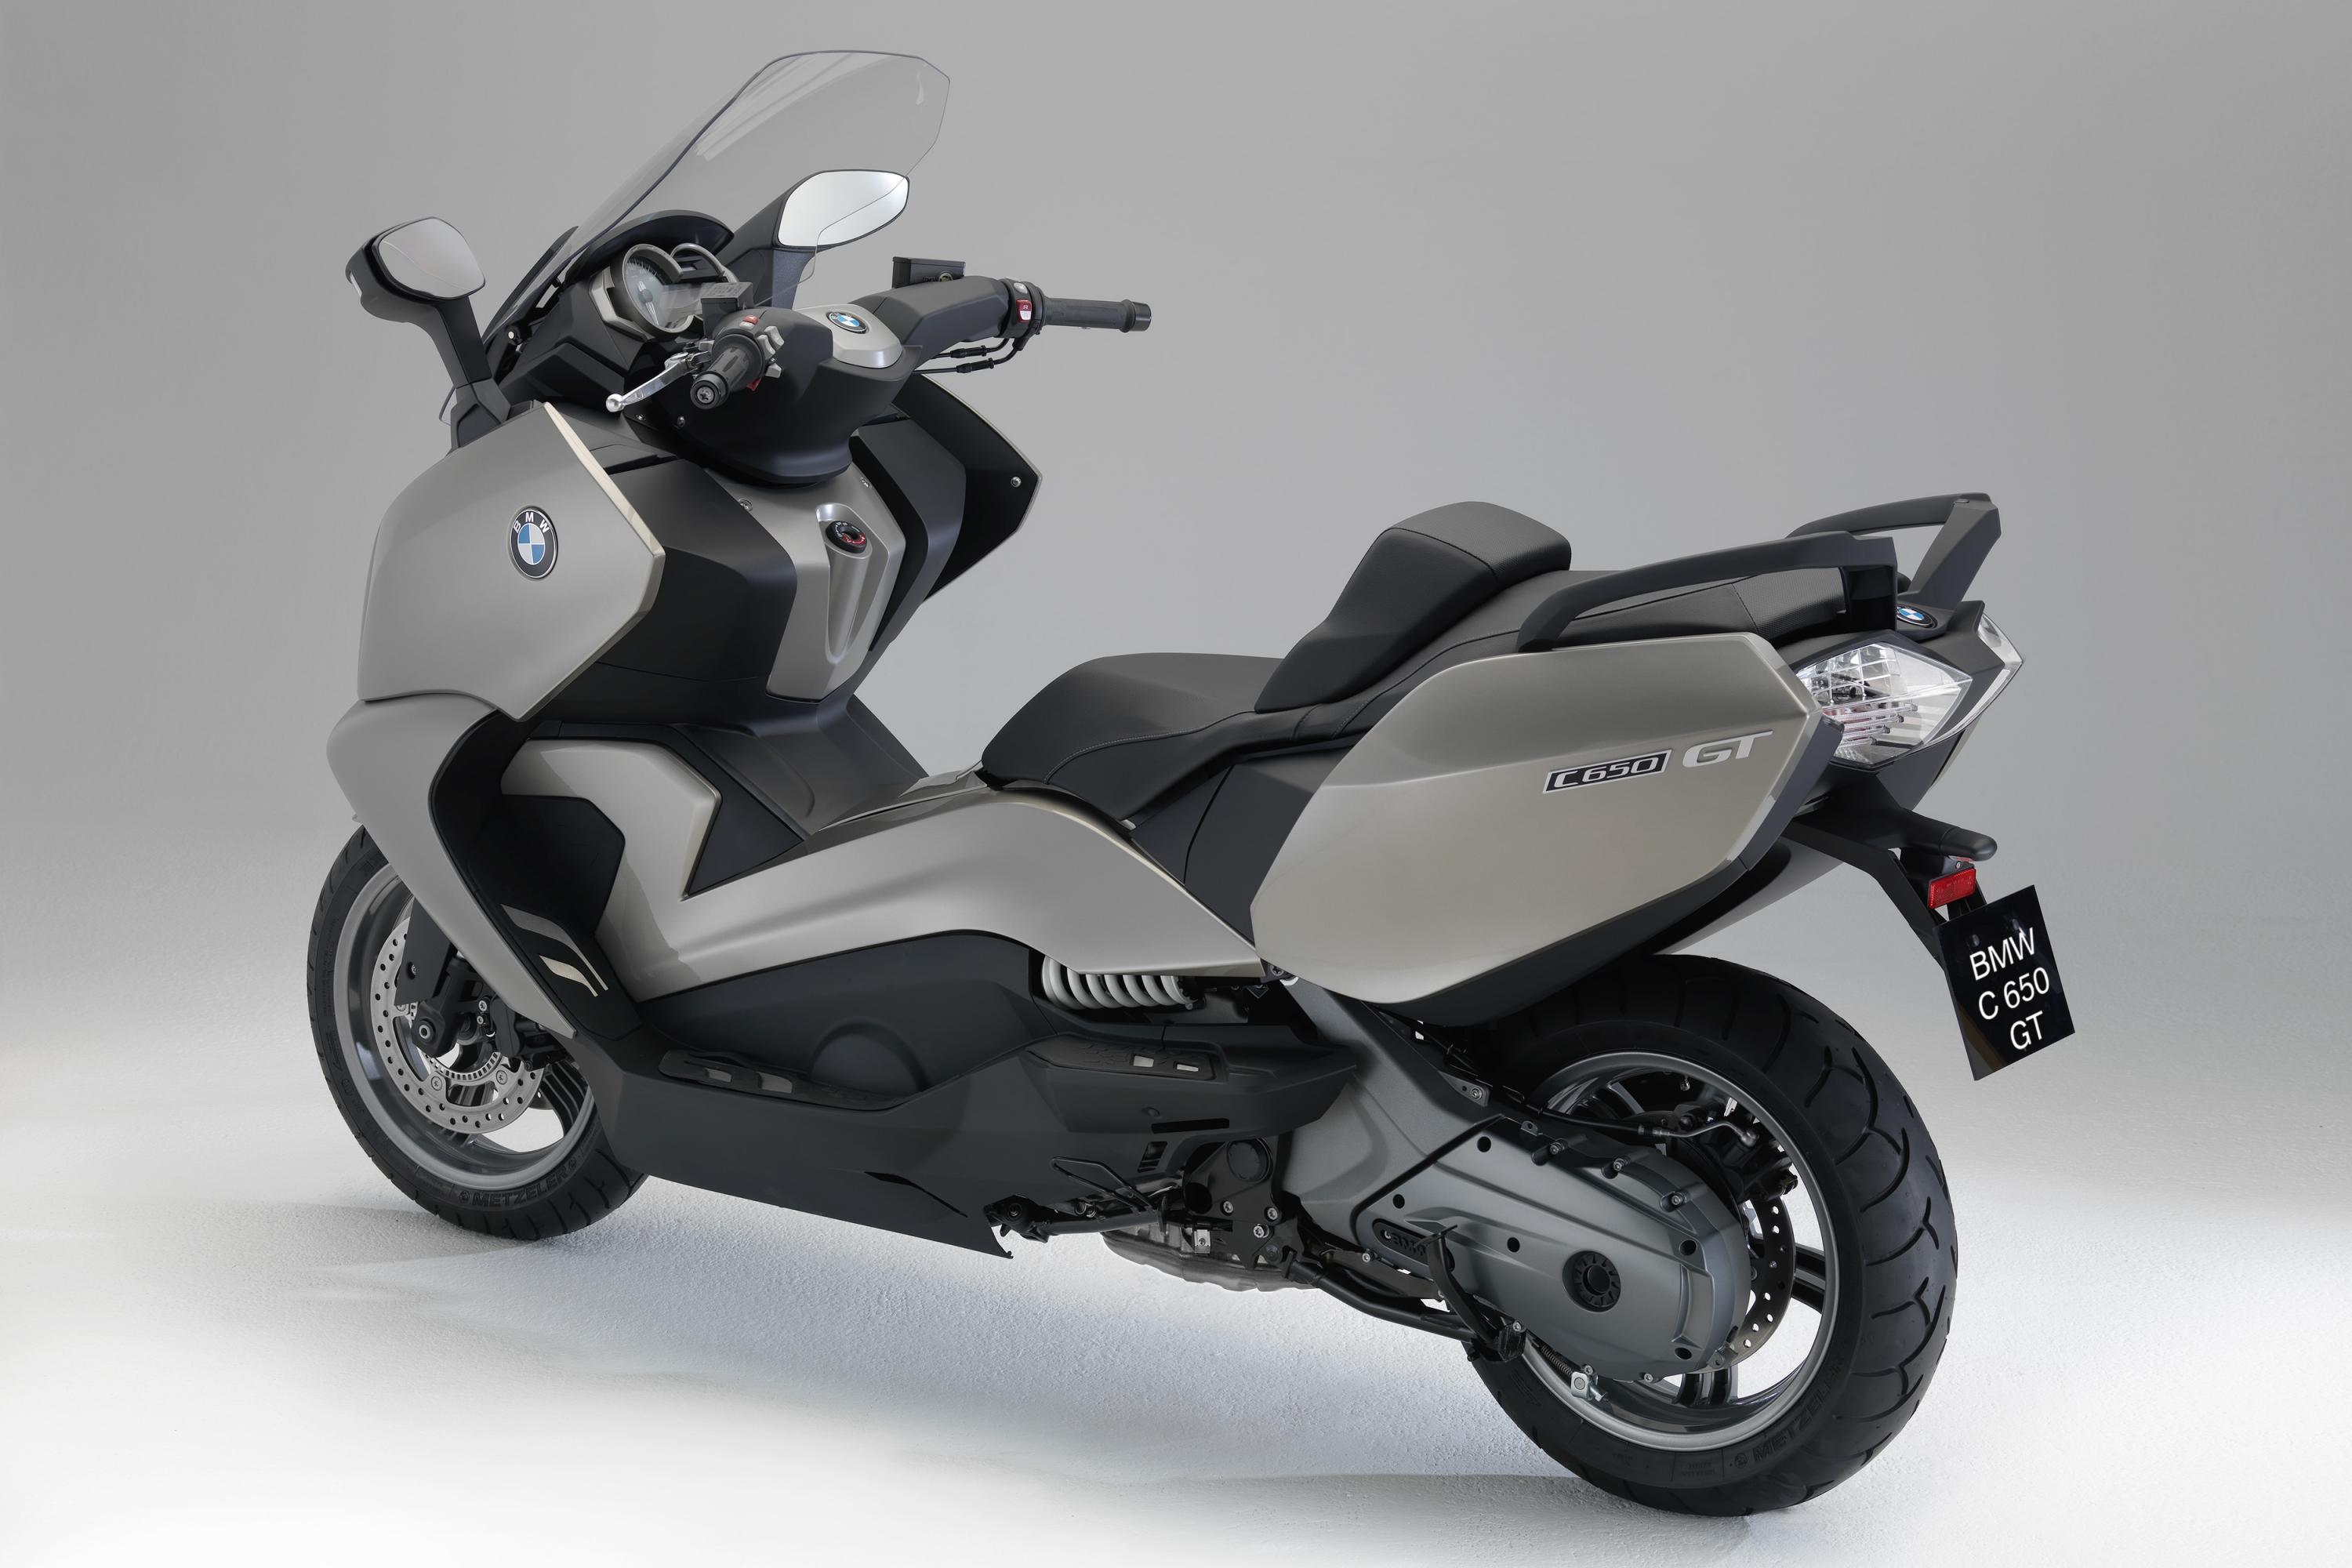 cell aluminium for which gt required bmw battery motorrad instead concept t have contains bmws a electronic designs casing e maxi also the and frame c scooter main s doesn system sport